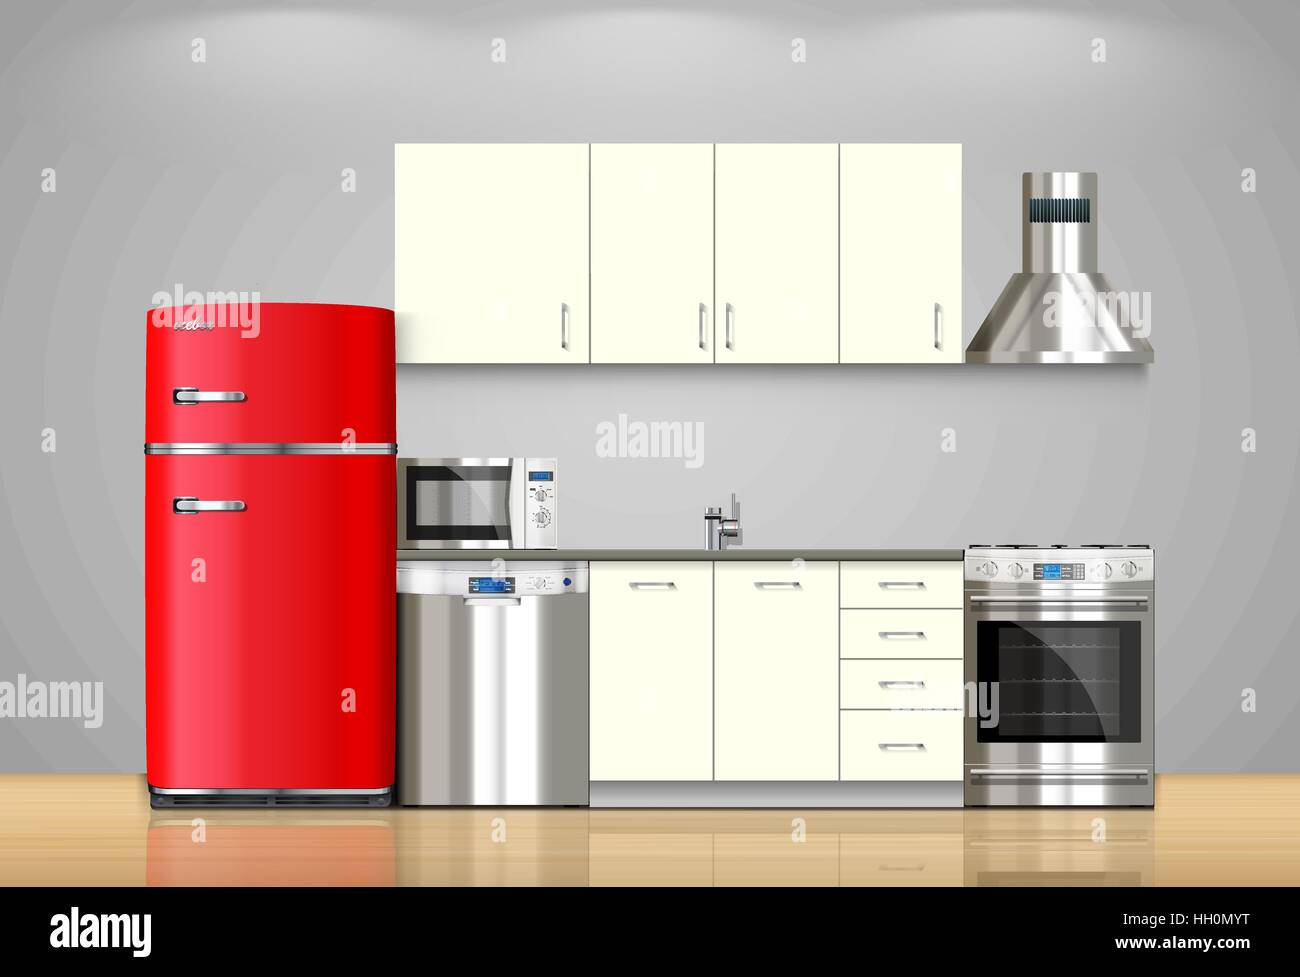 Cooker Hood Stock Photos & Cooker Hood Stock Images - Alamy